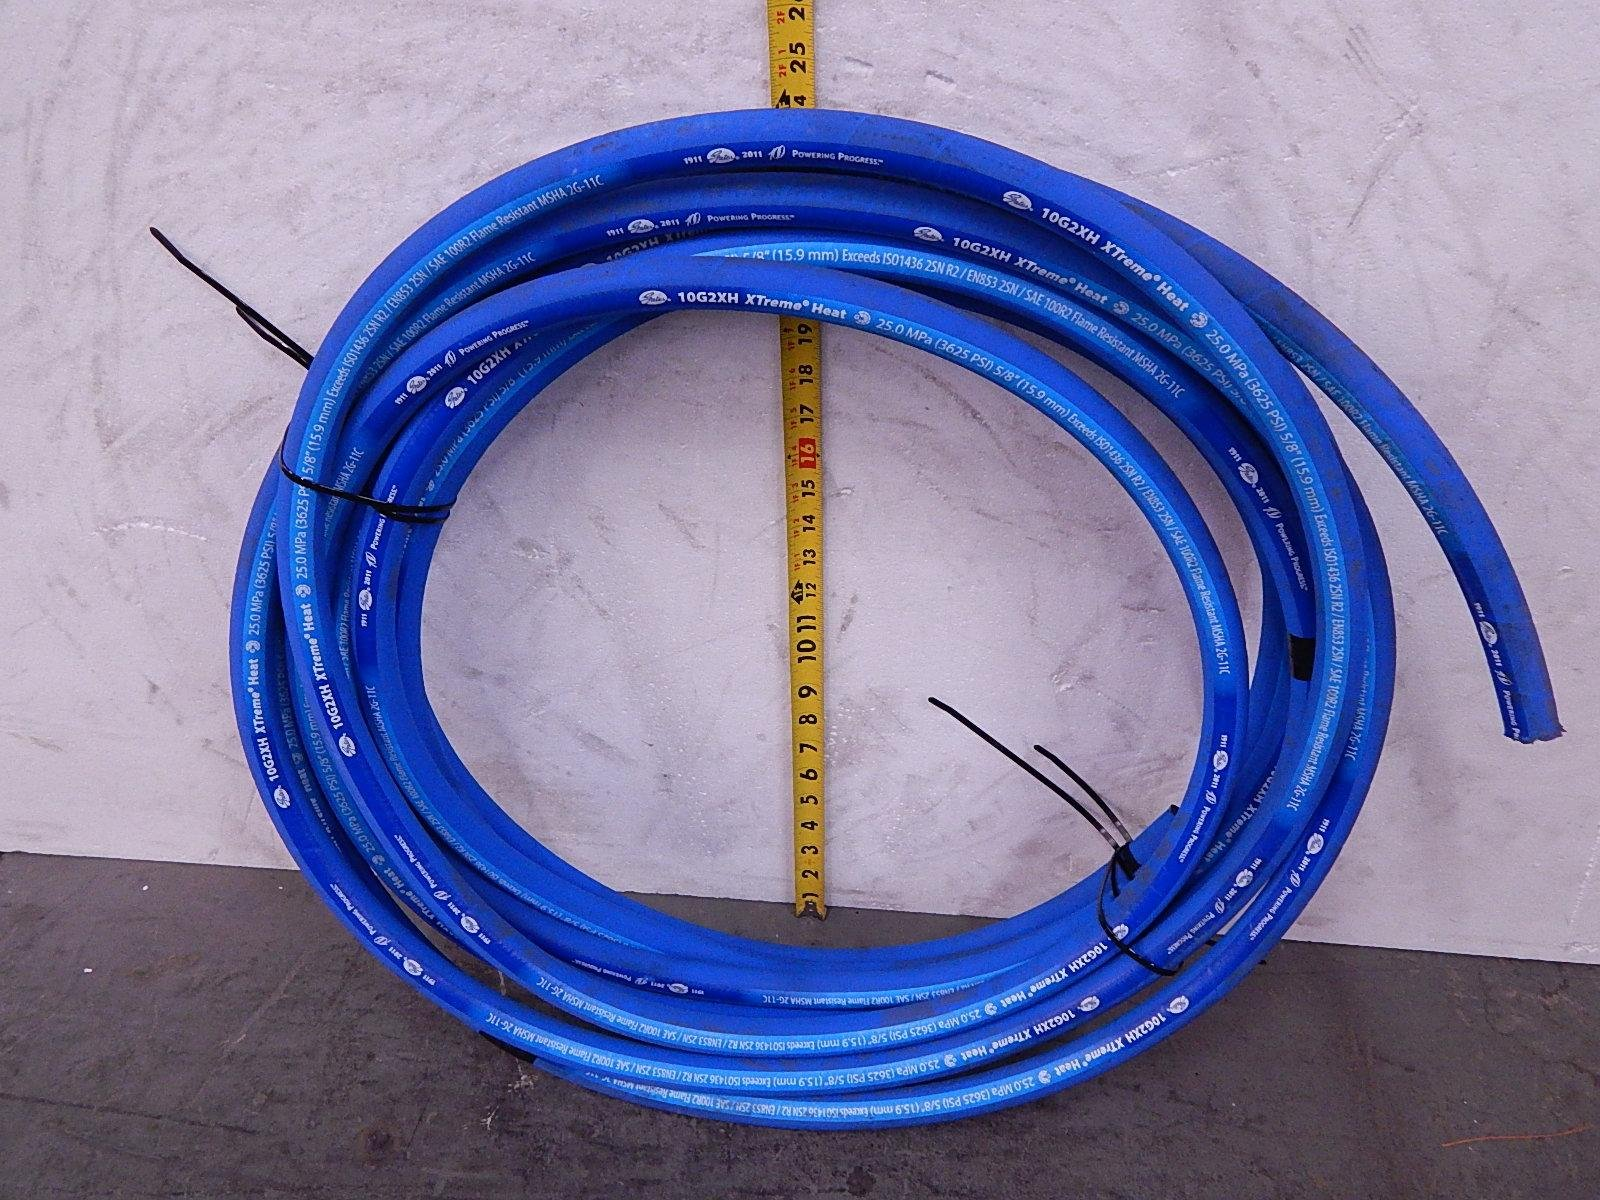 Gates 10G2XH, ISO1436 2SN R2, EN853 2SN, SAE 100R2, 2G-1C 5/8 In 3625 Psi XTreme Heat Flame Resistant Hydraulic Hose 45 Ft T104235